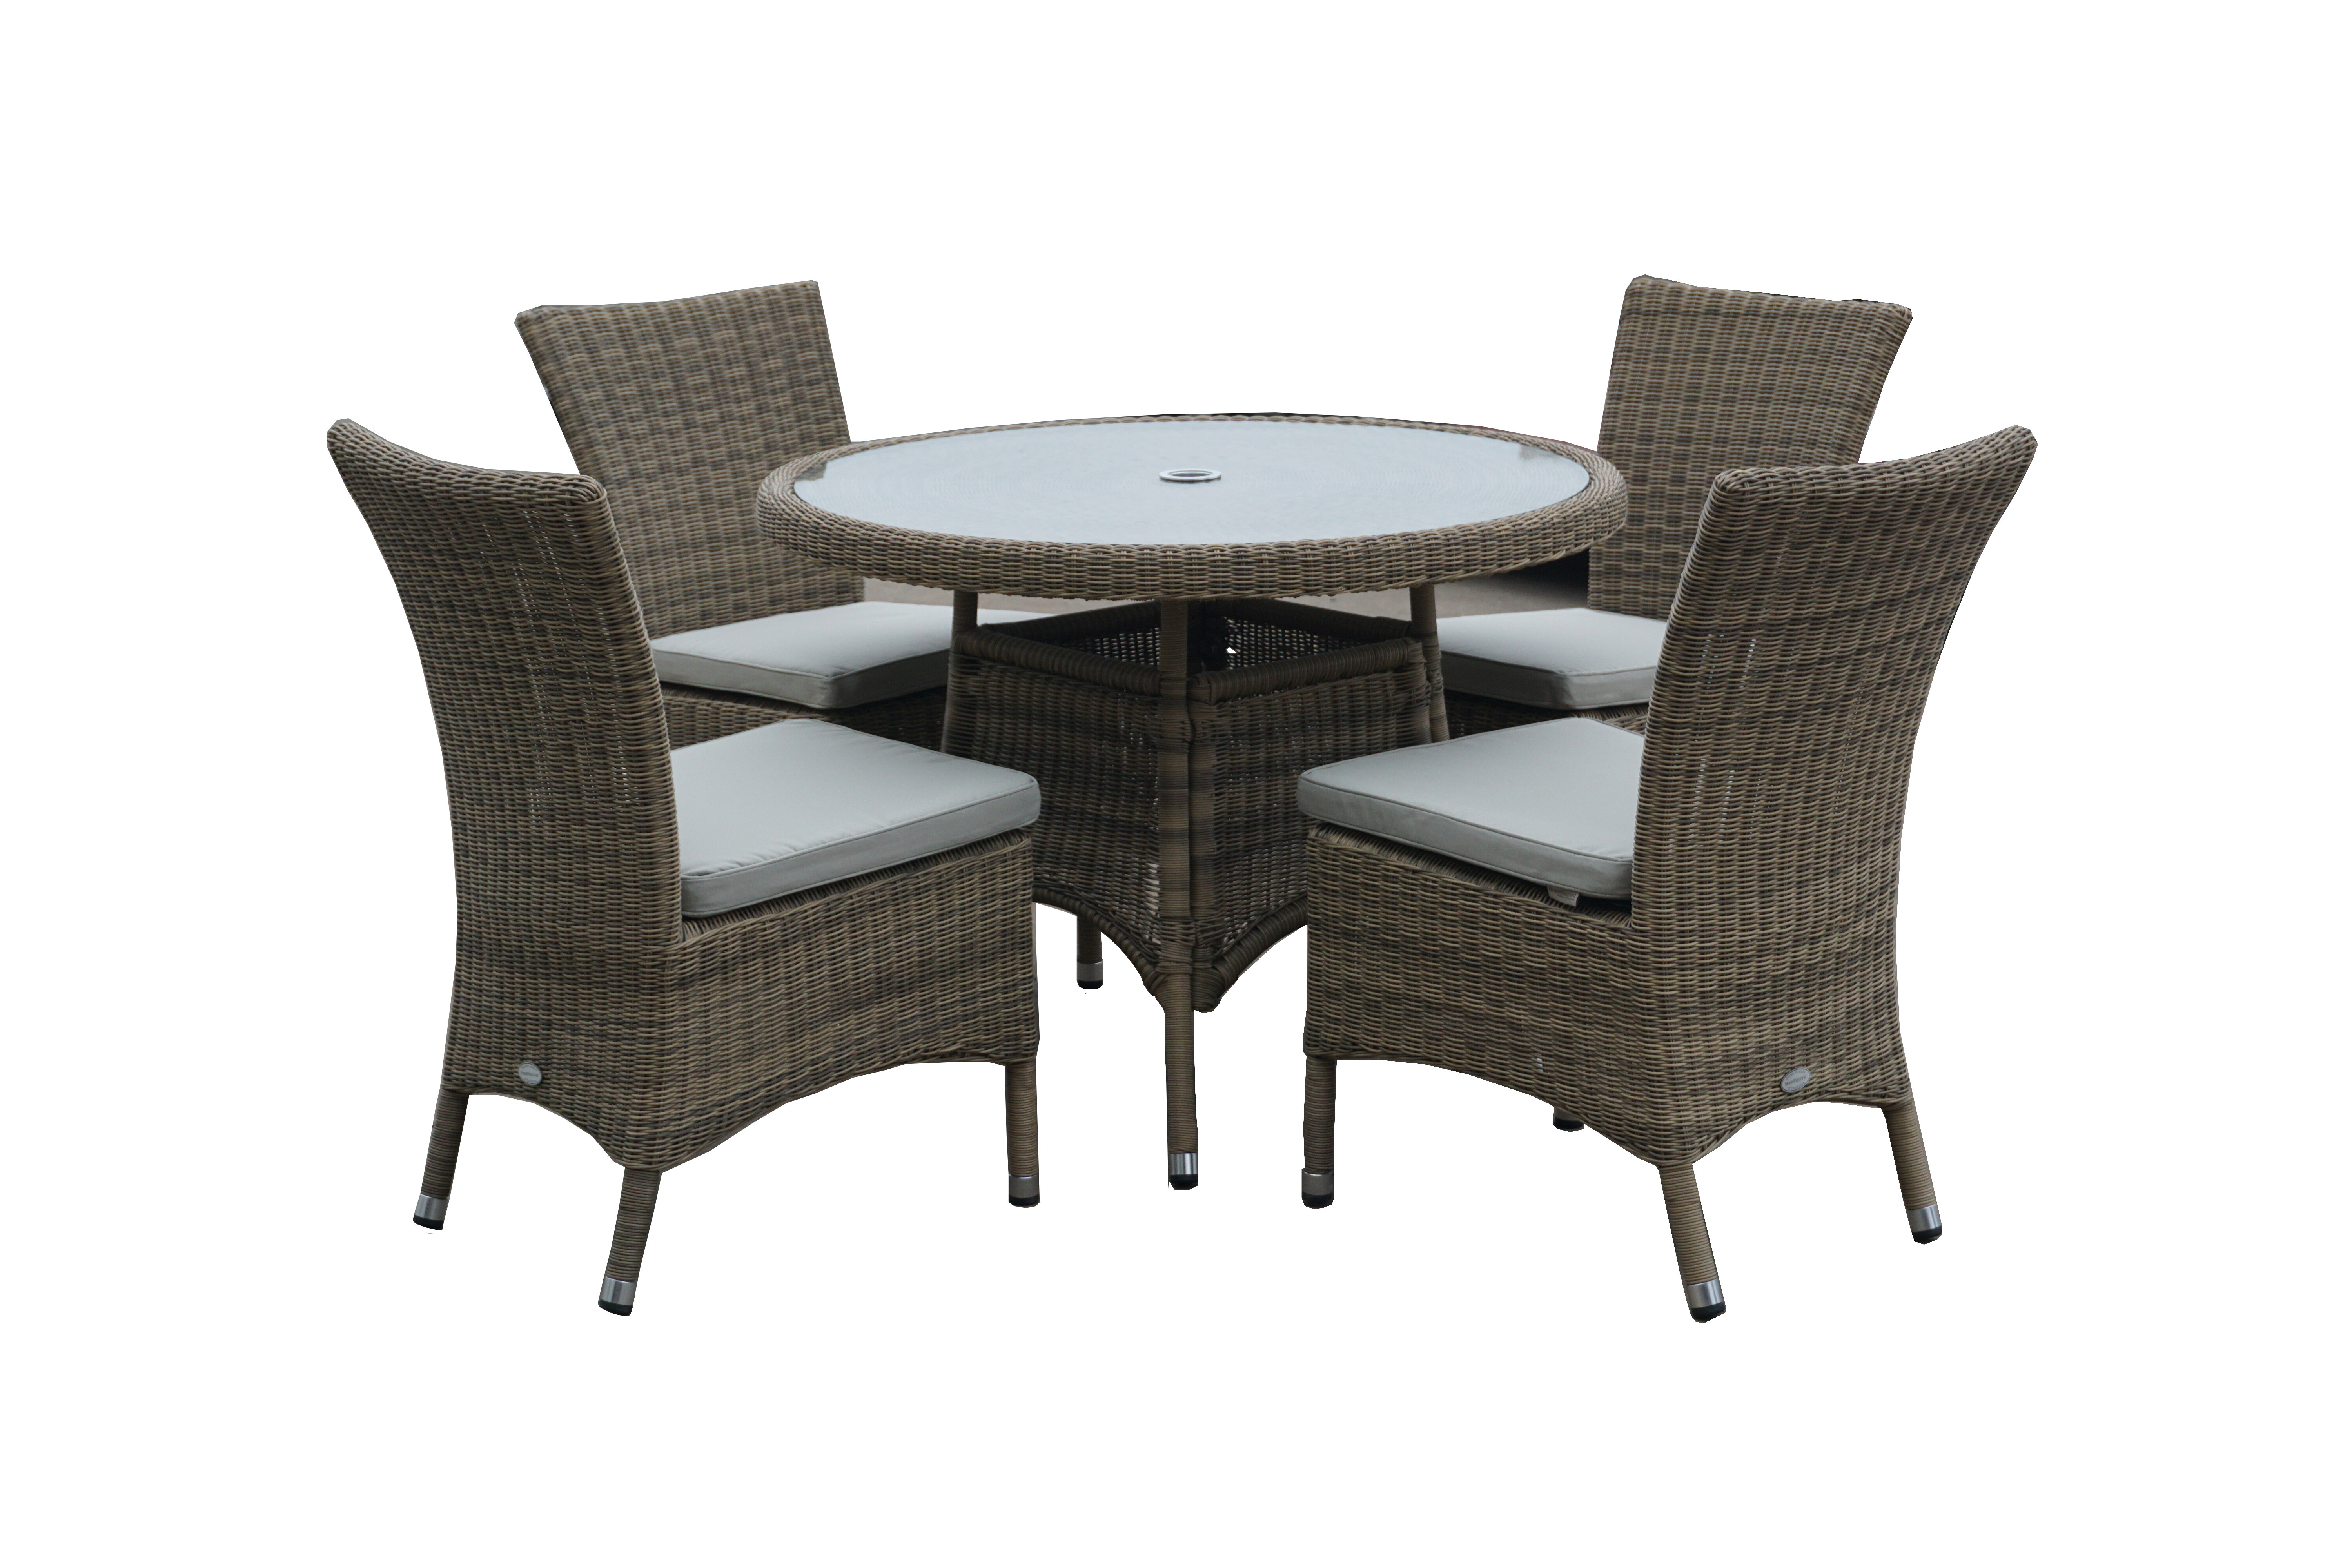 Sol 72 outdoor hobart 4 seater dining set with cushions wayfair co uk